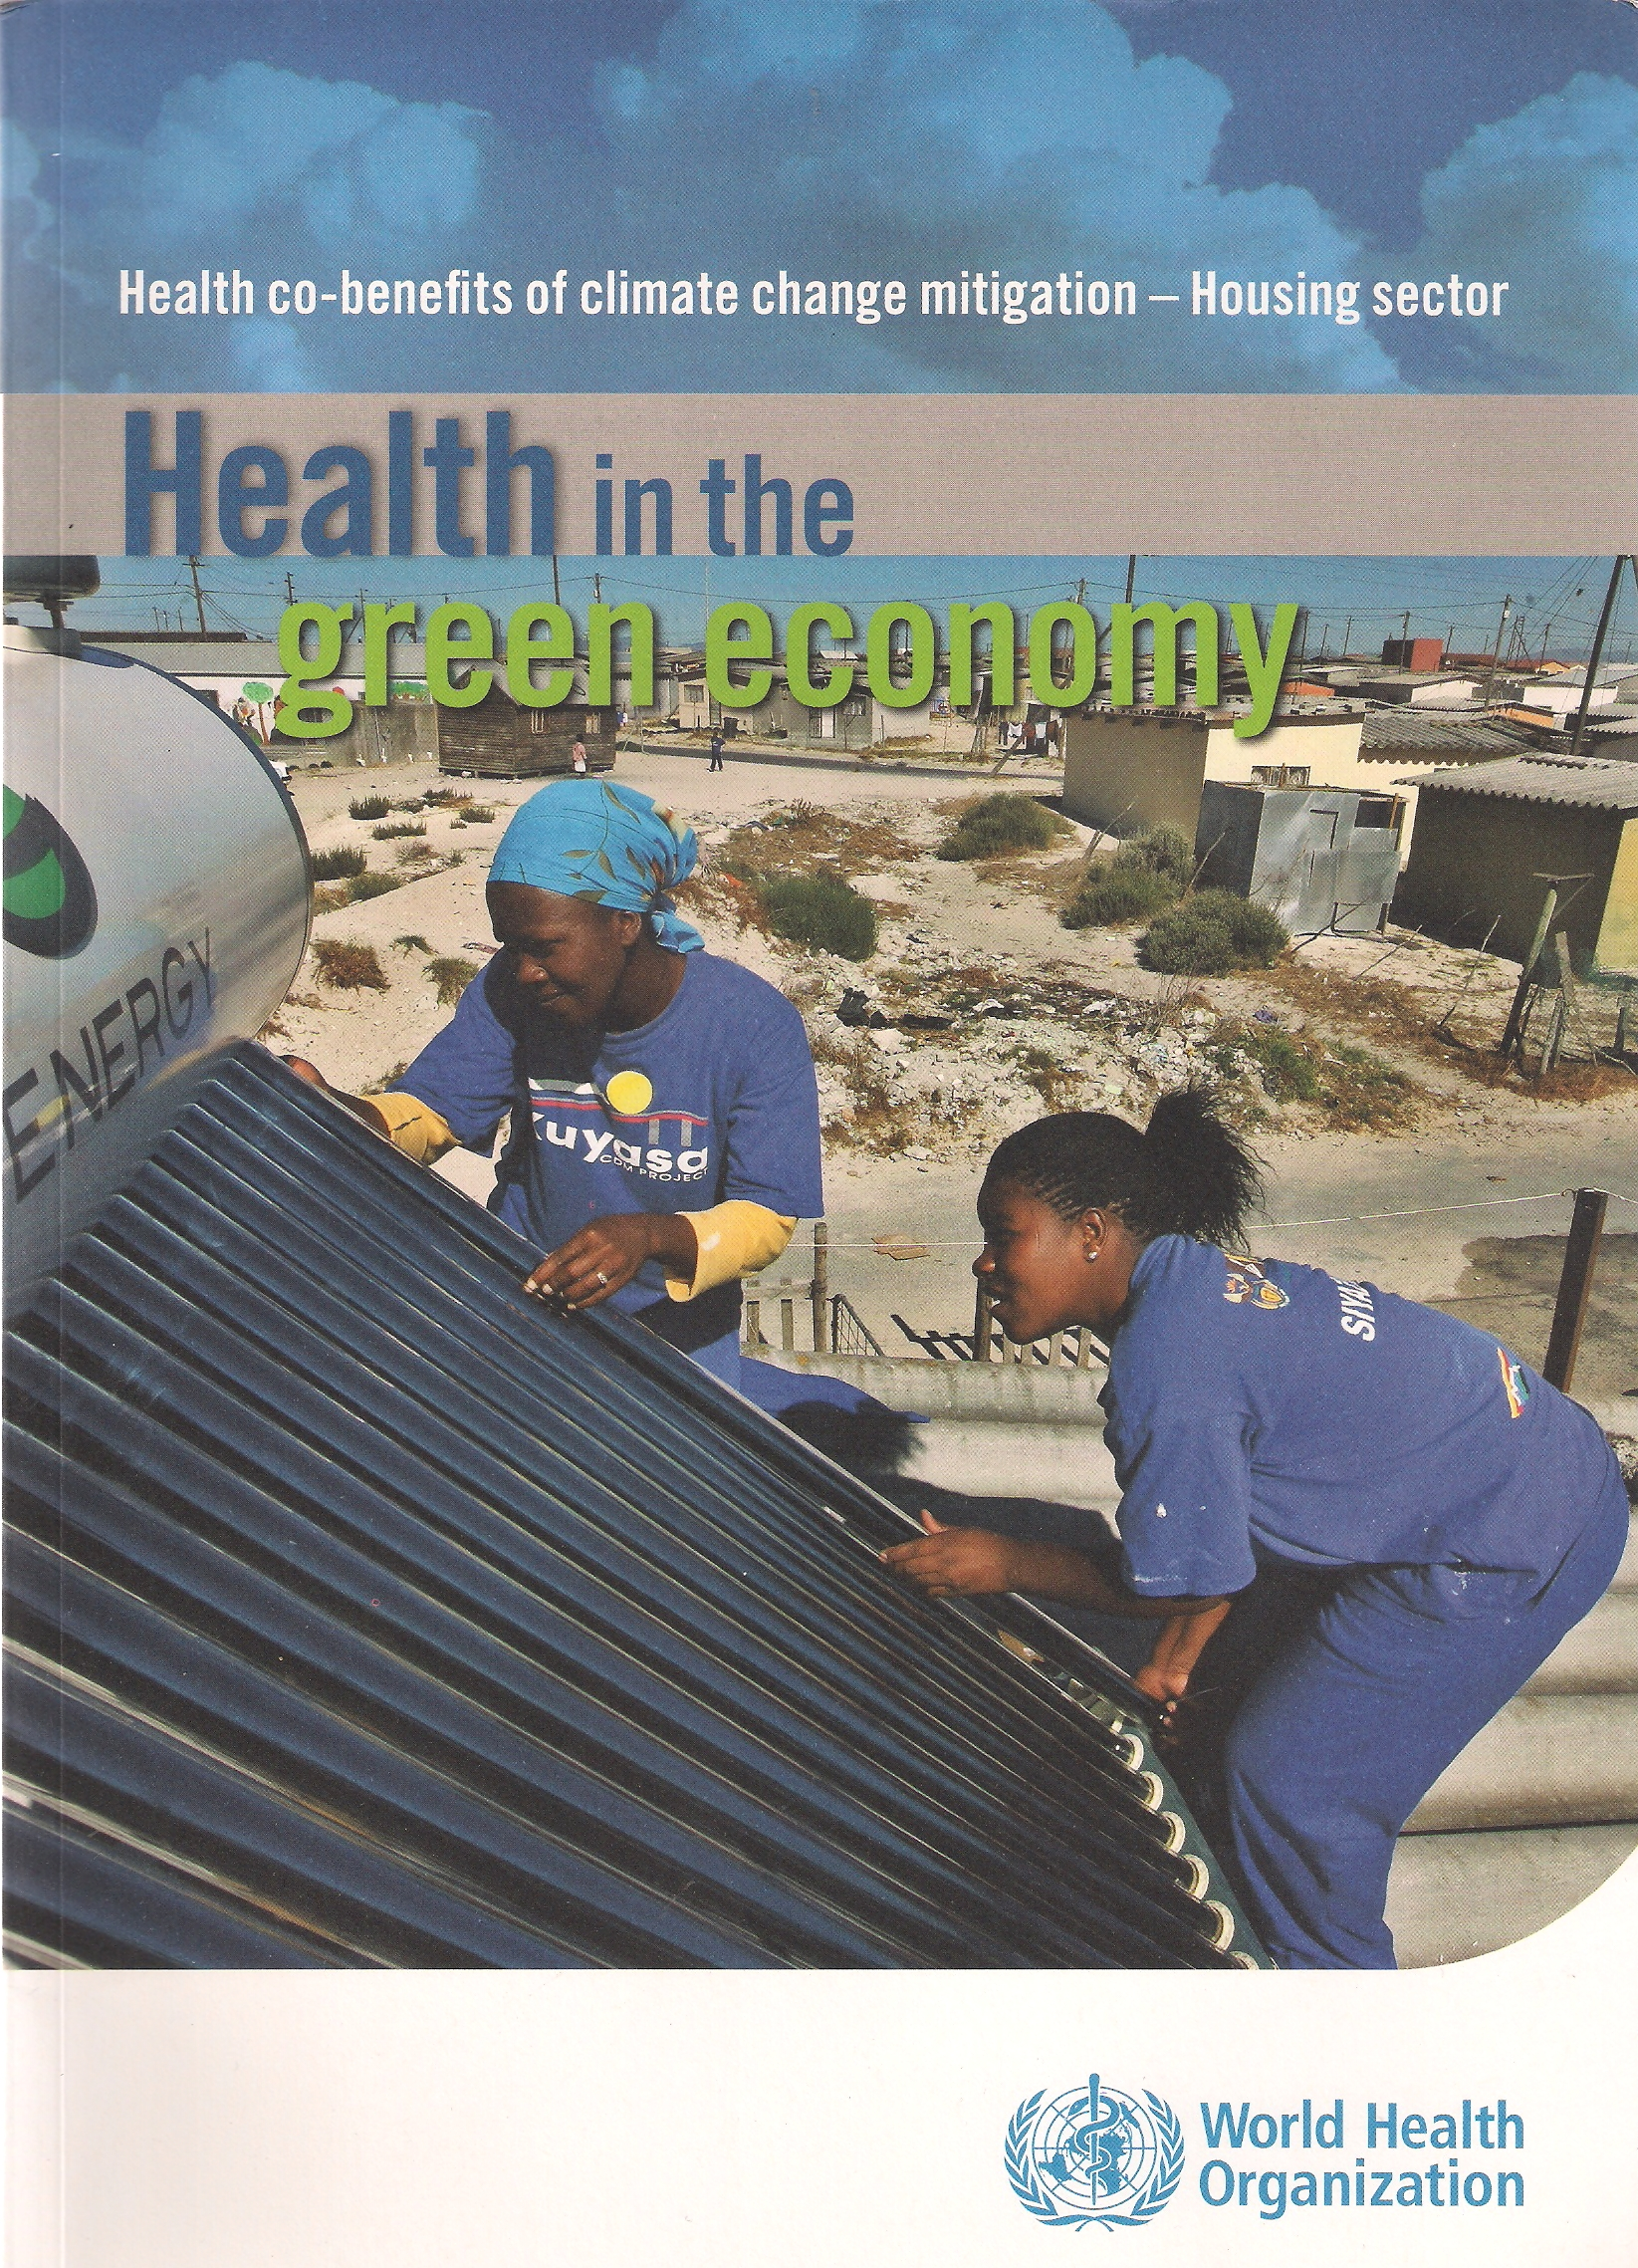 https://libfkmui.files.wordpress.com/2012/02/health-in-green-economy.jpg